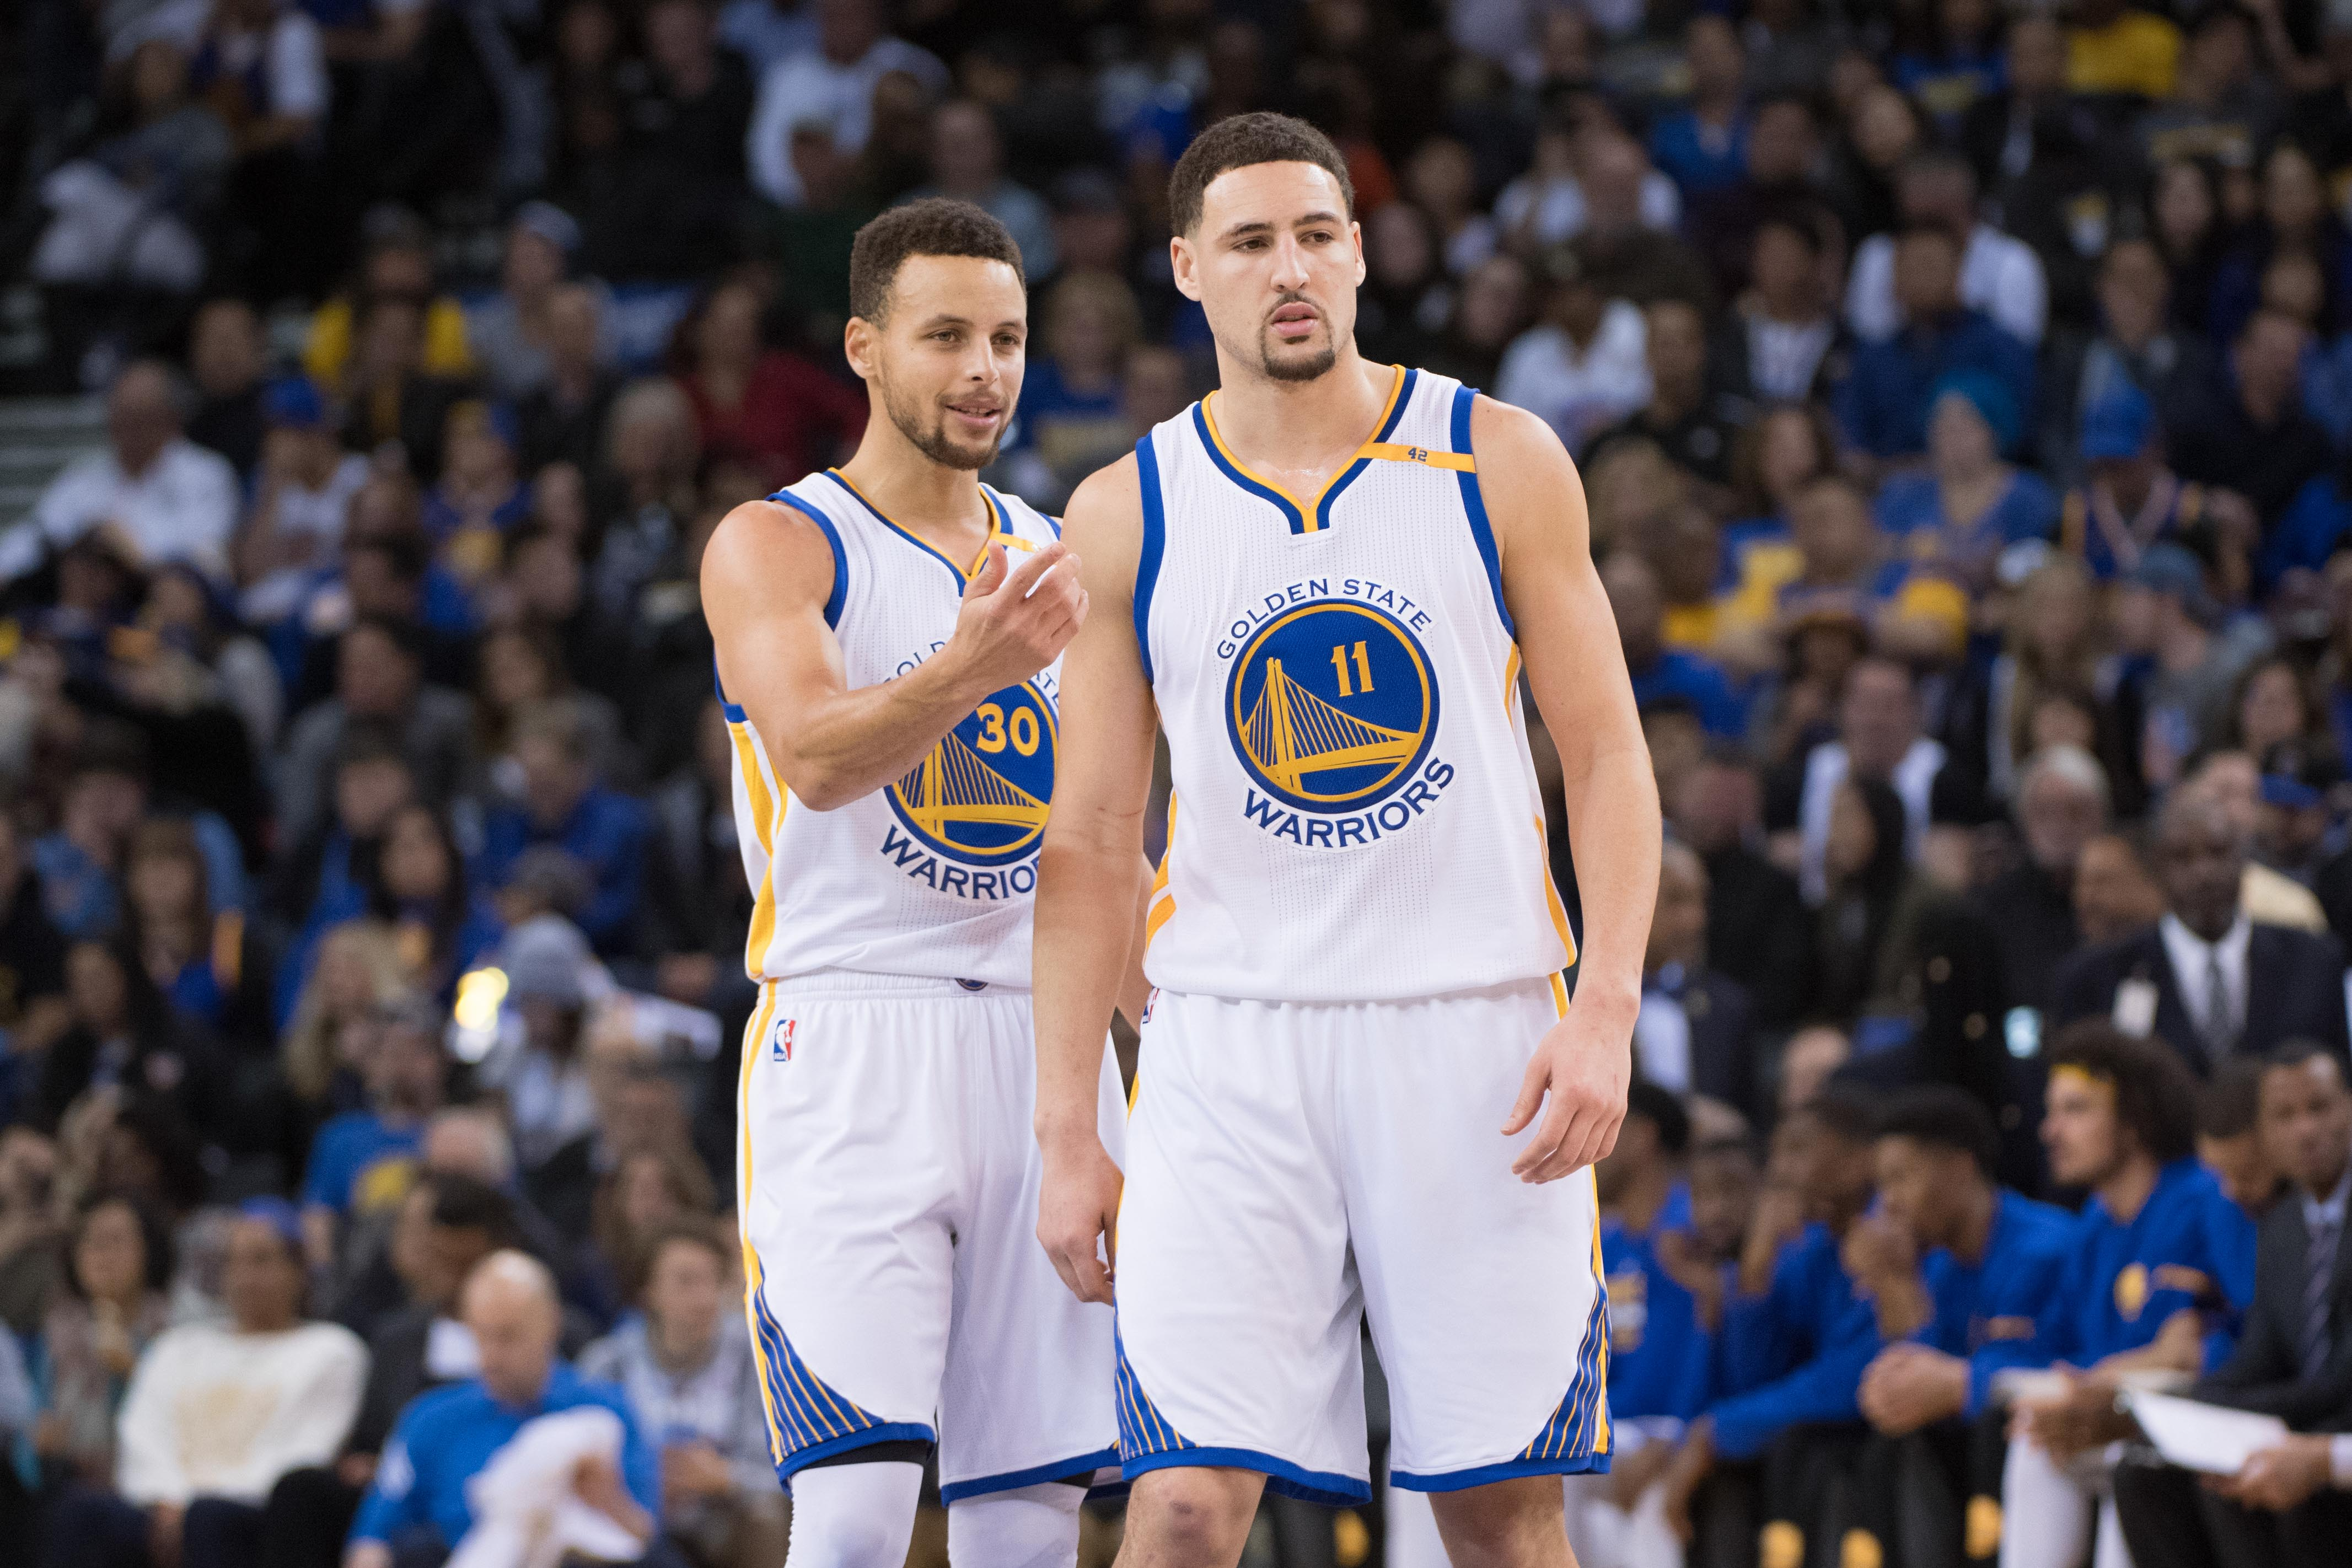 Warriors: Will Klay Thompson's legacy forever be tied to Steph Curry's?